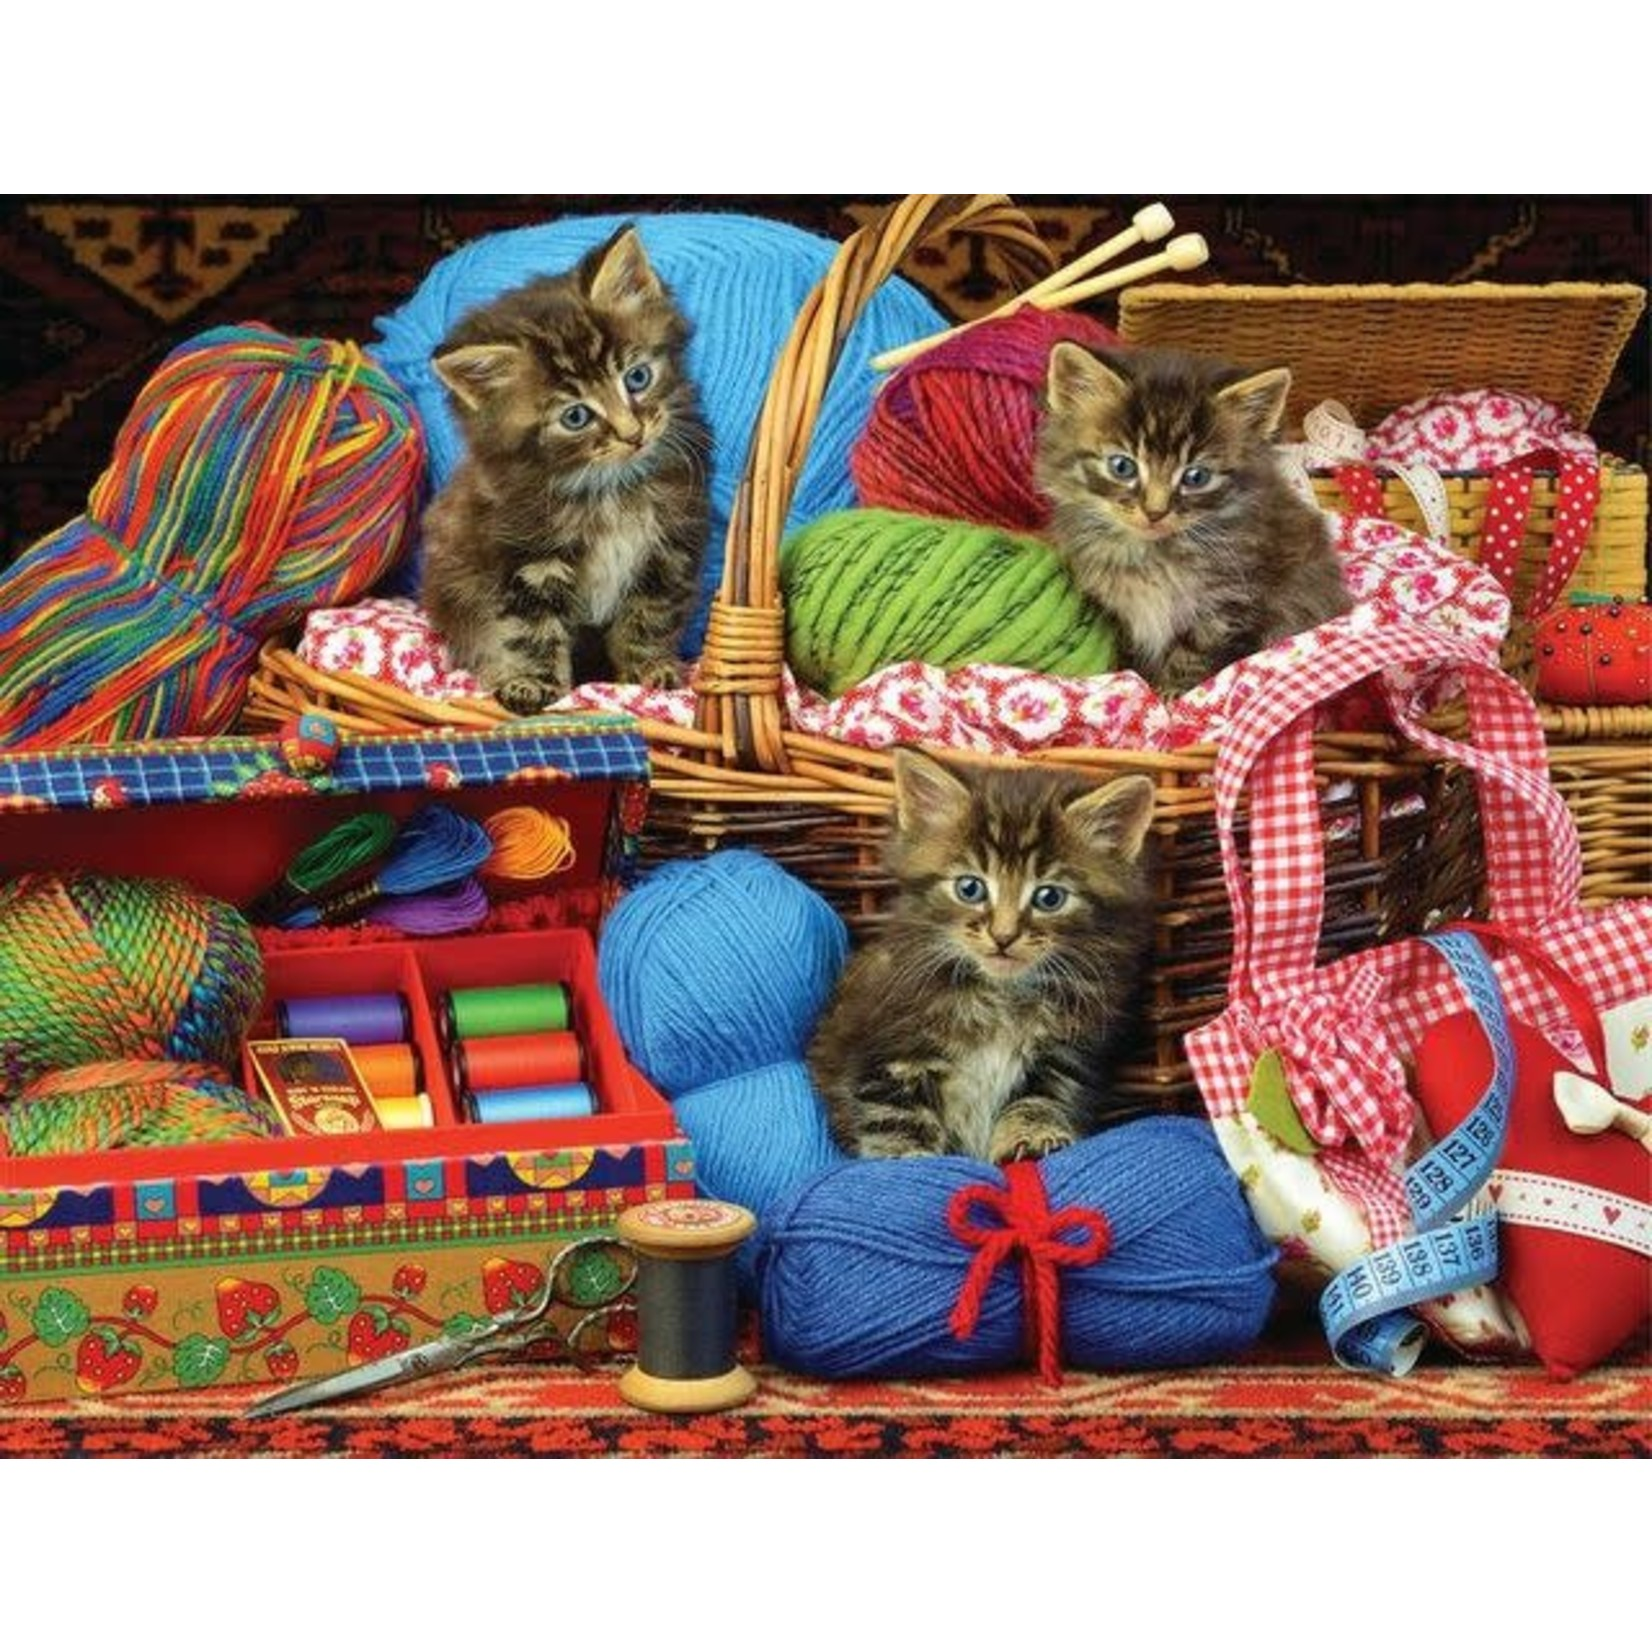 SEW CUTE CATS PUZZLE